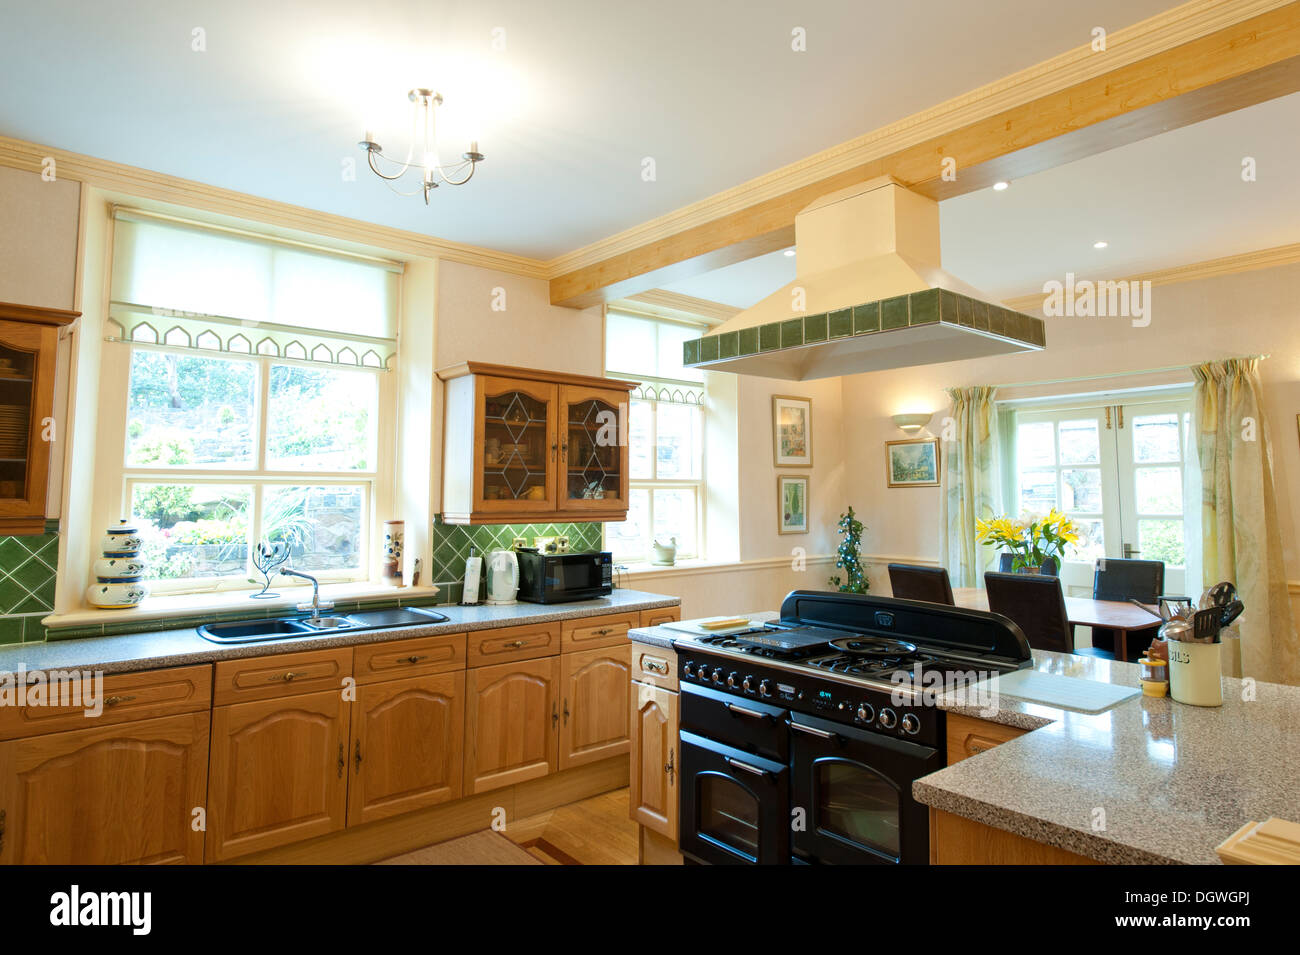 Large open plan modern kitchen central hob - Stock Image